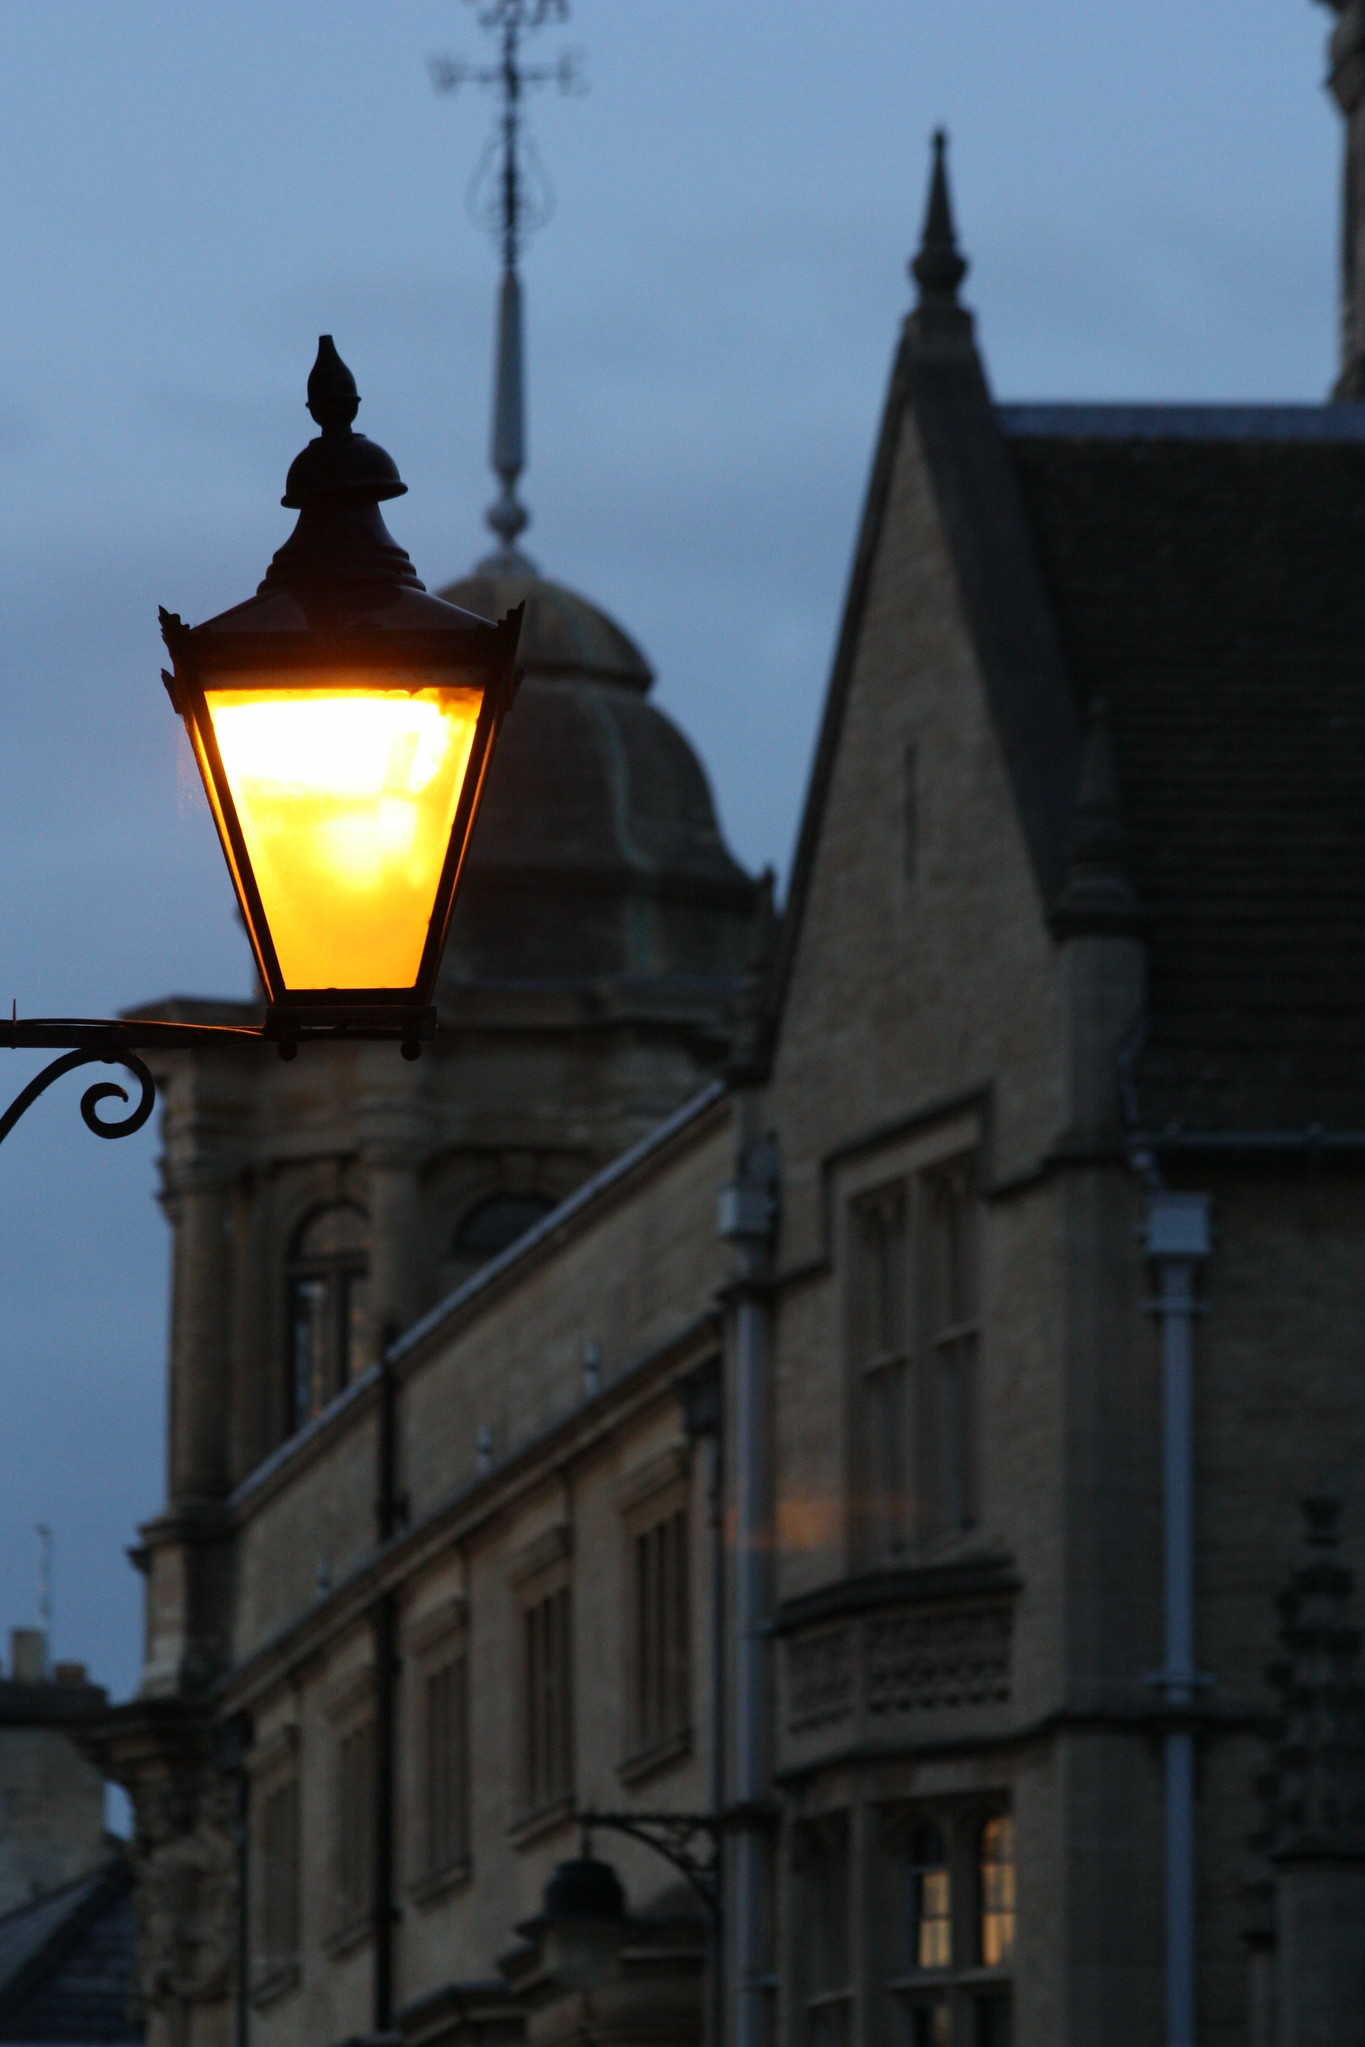 A street lamp by the Bodleian Library